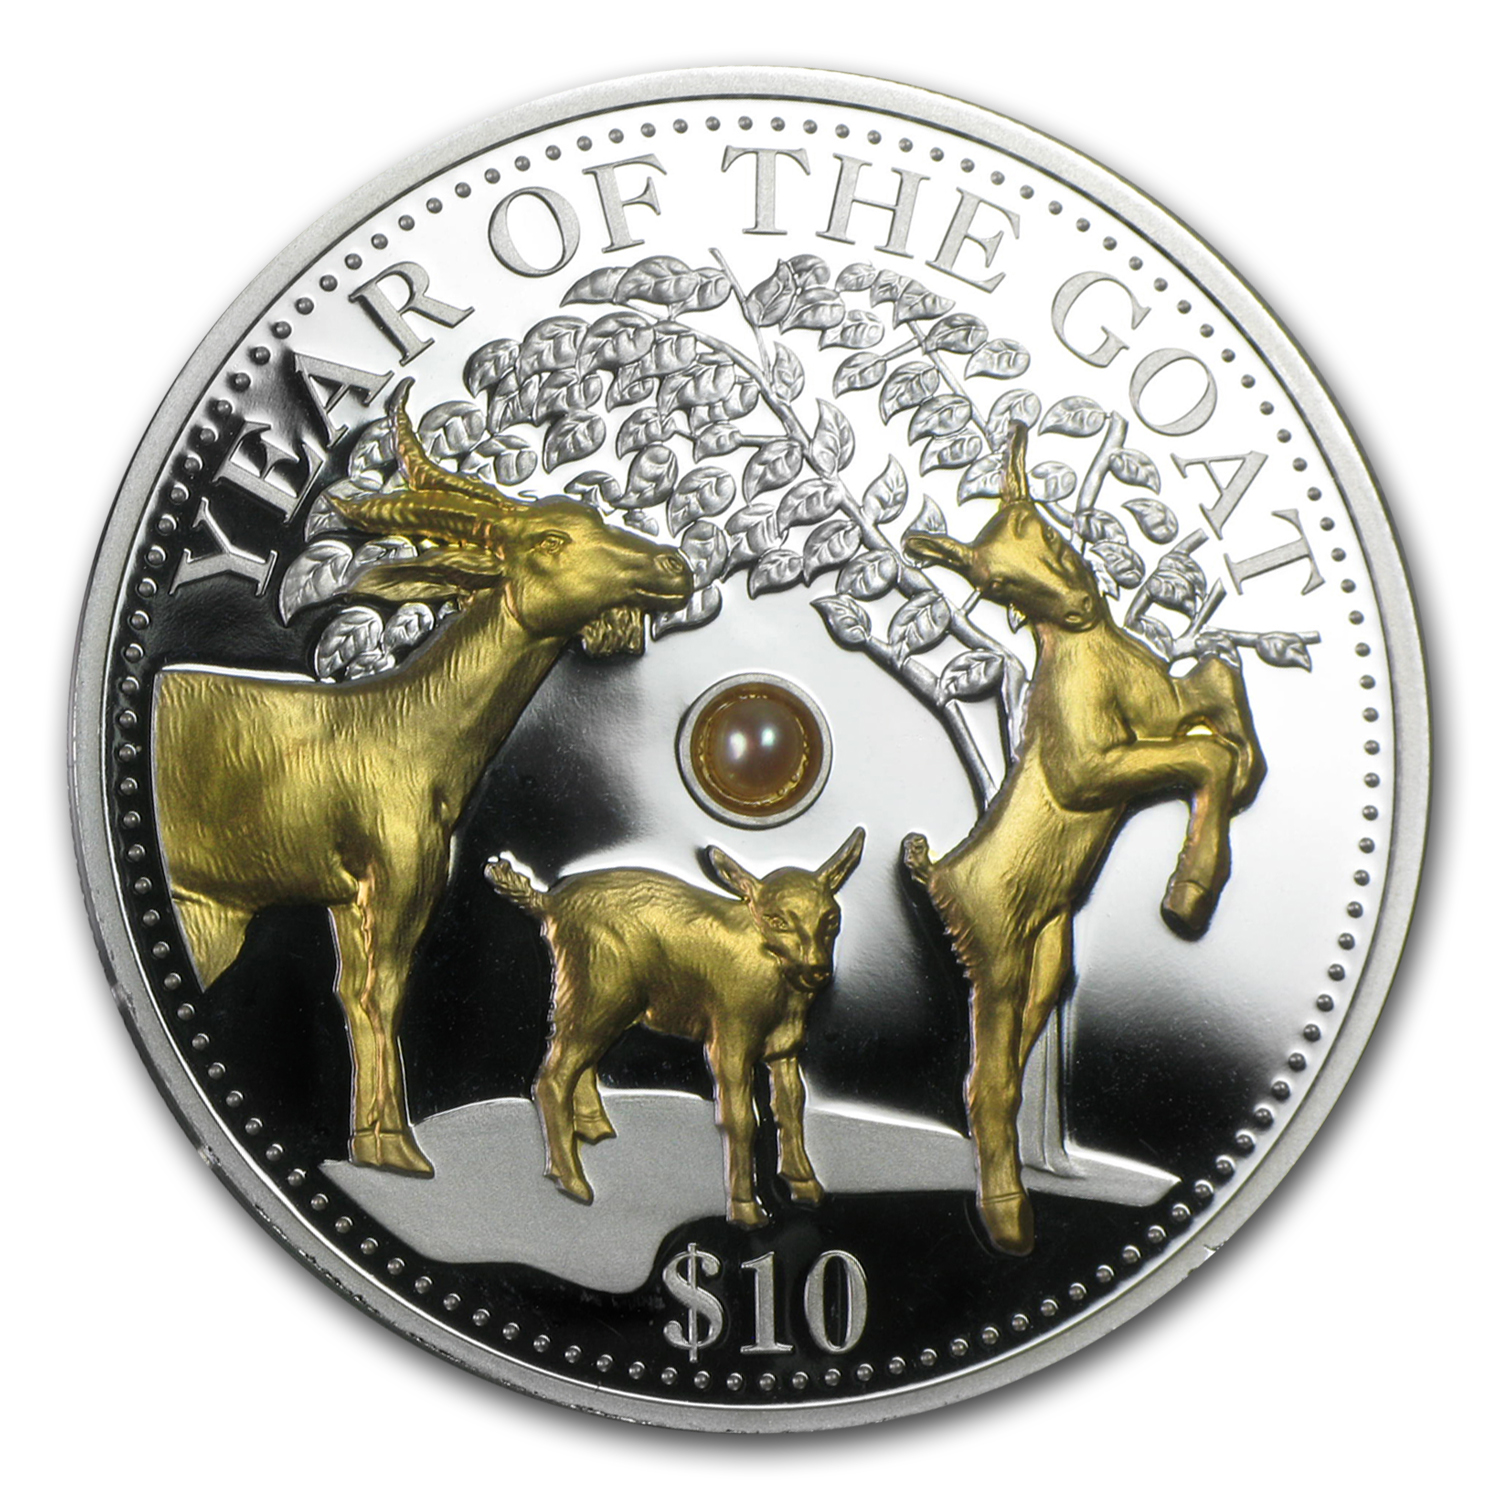 Fiji 2015 1 oz Silver Year of the Goat (Gold Gilded with Pearl)